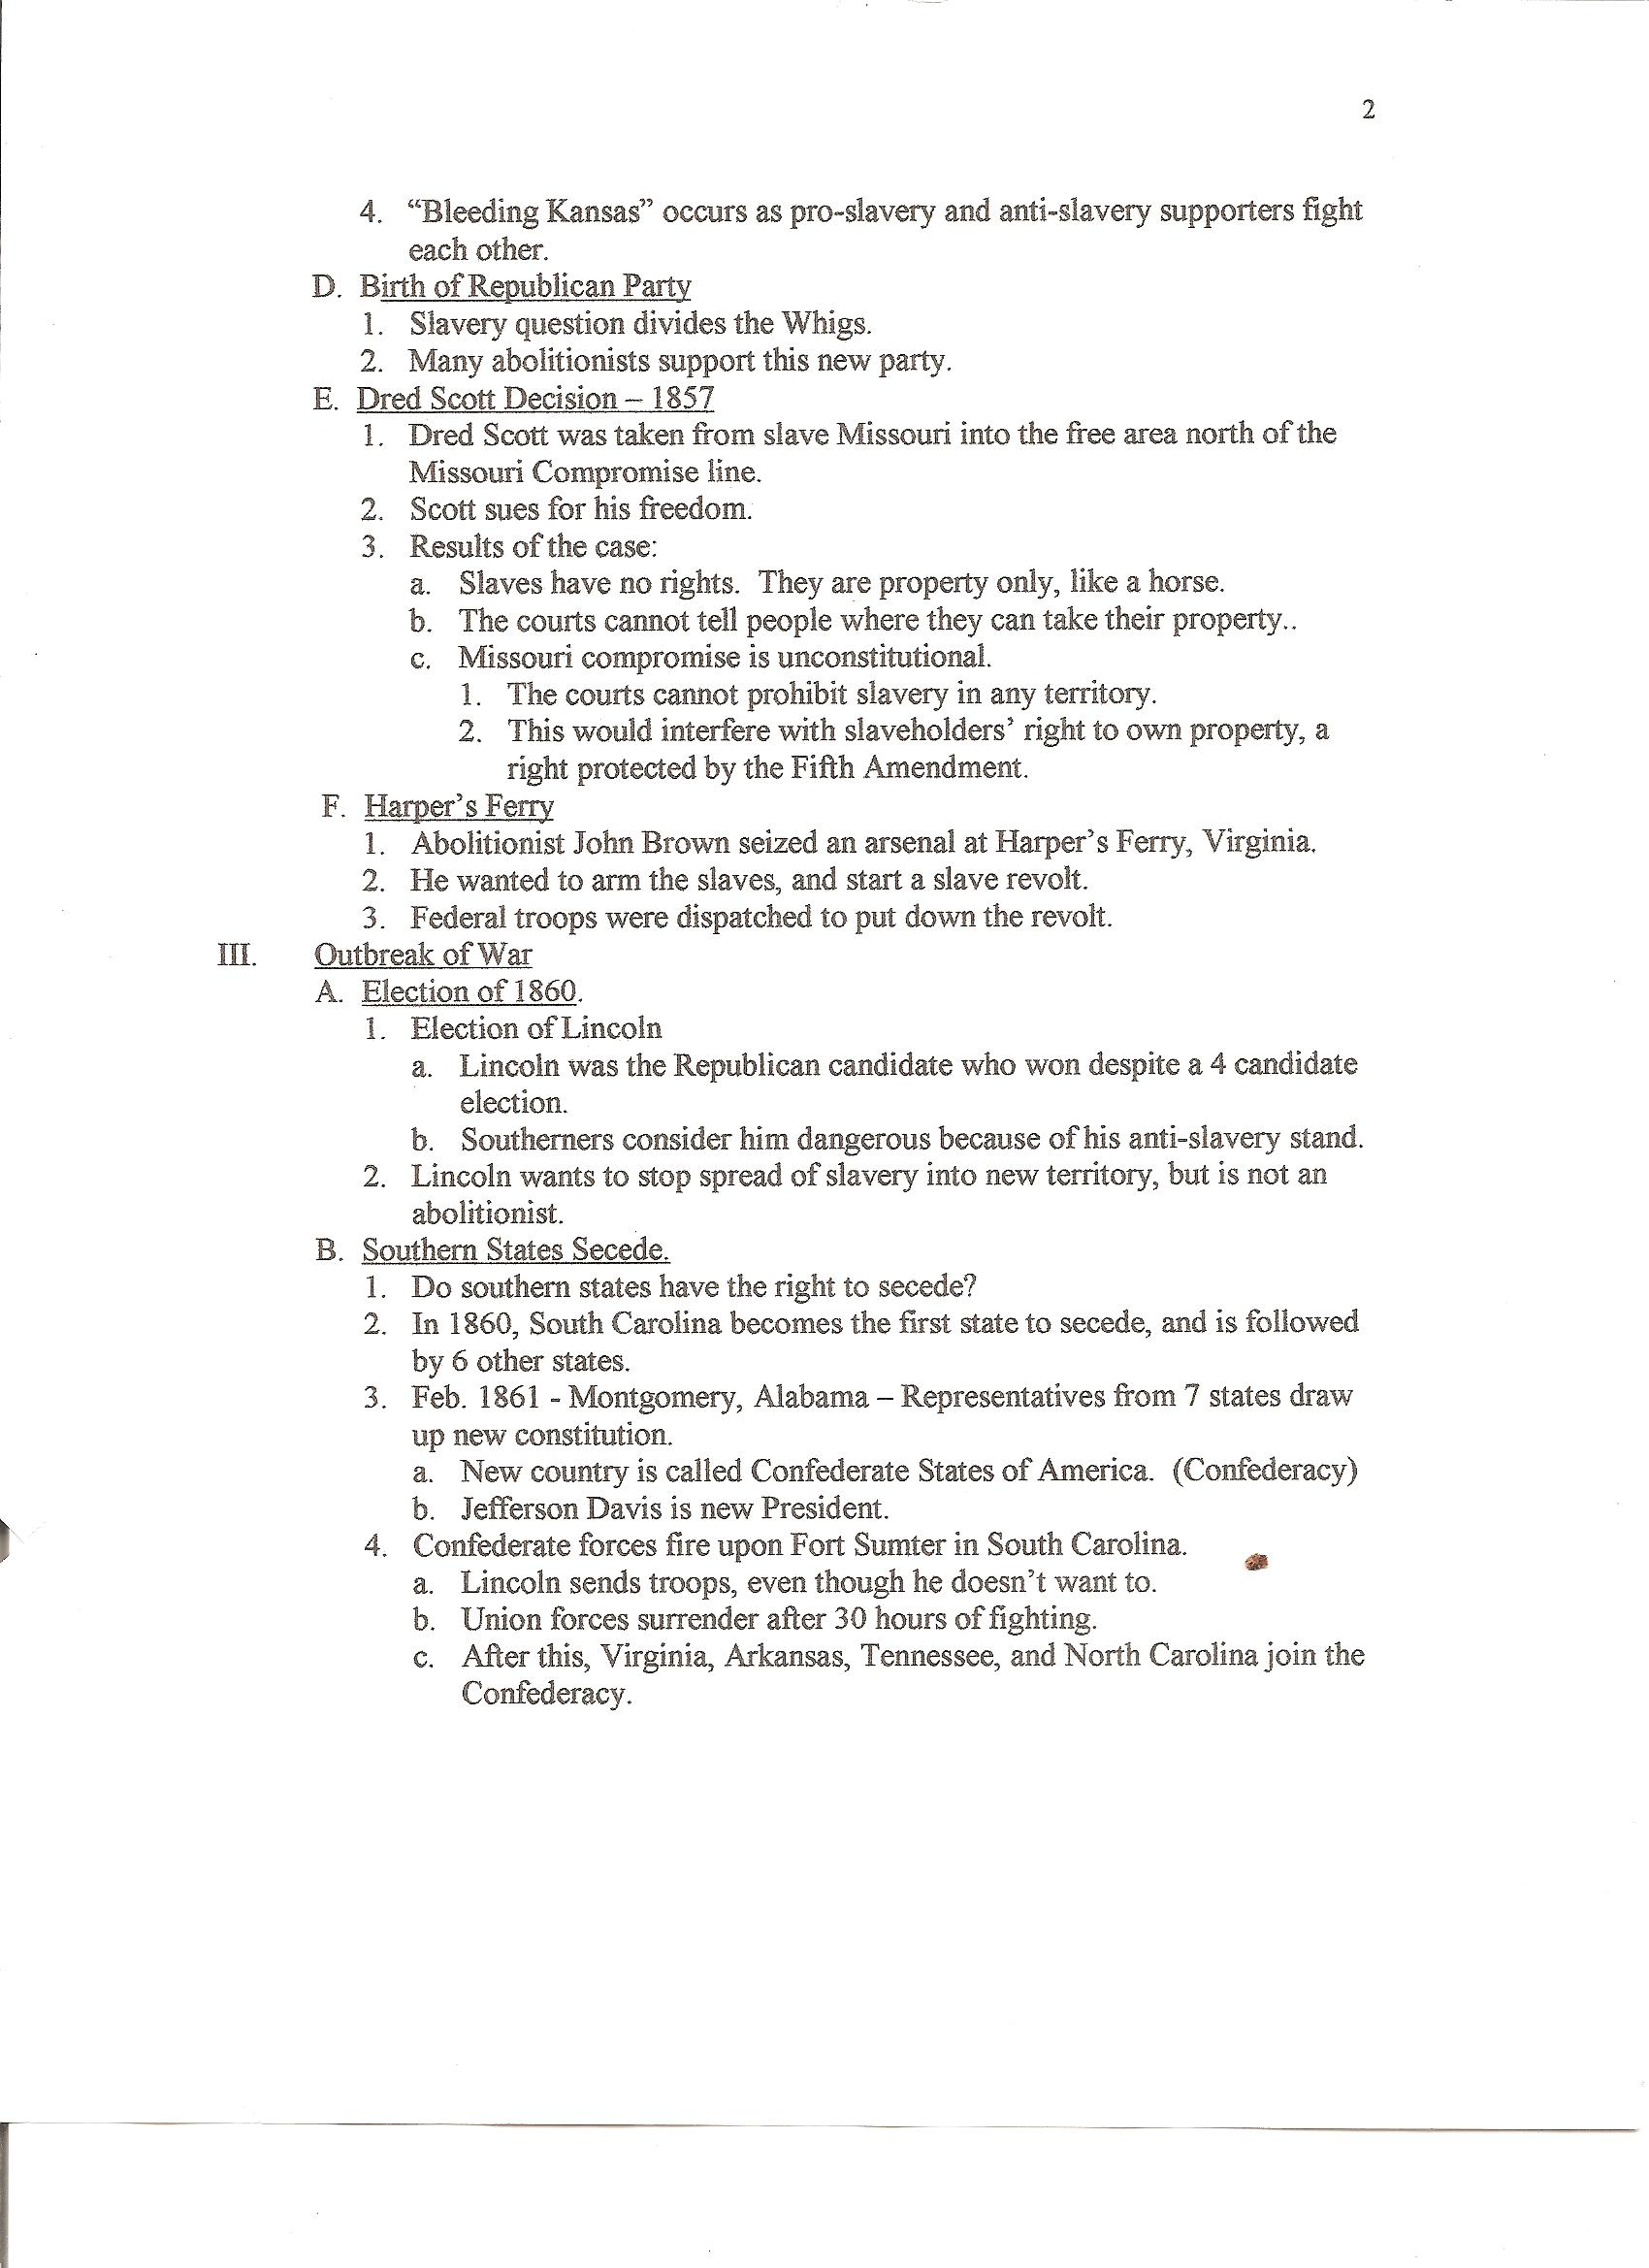 Civil War Vocabulary And Notes